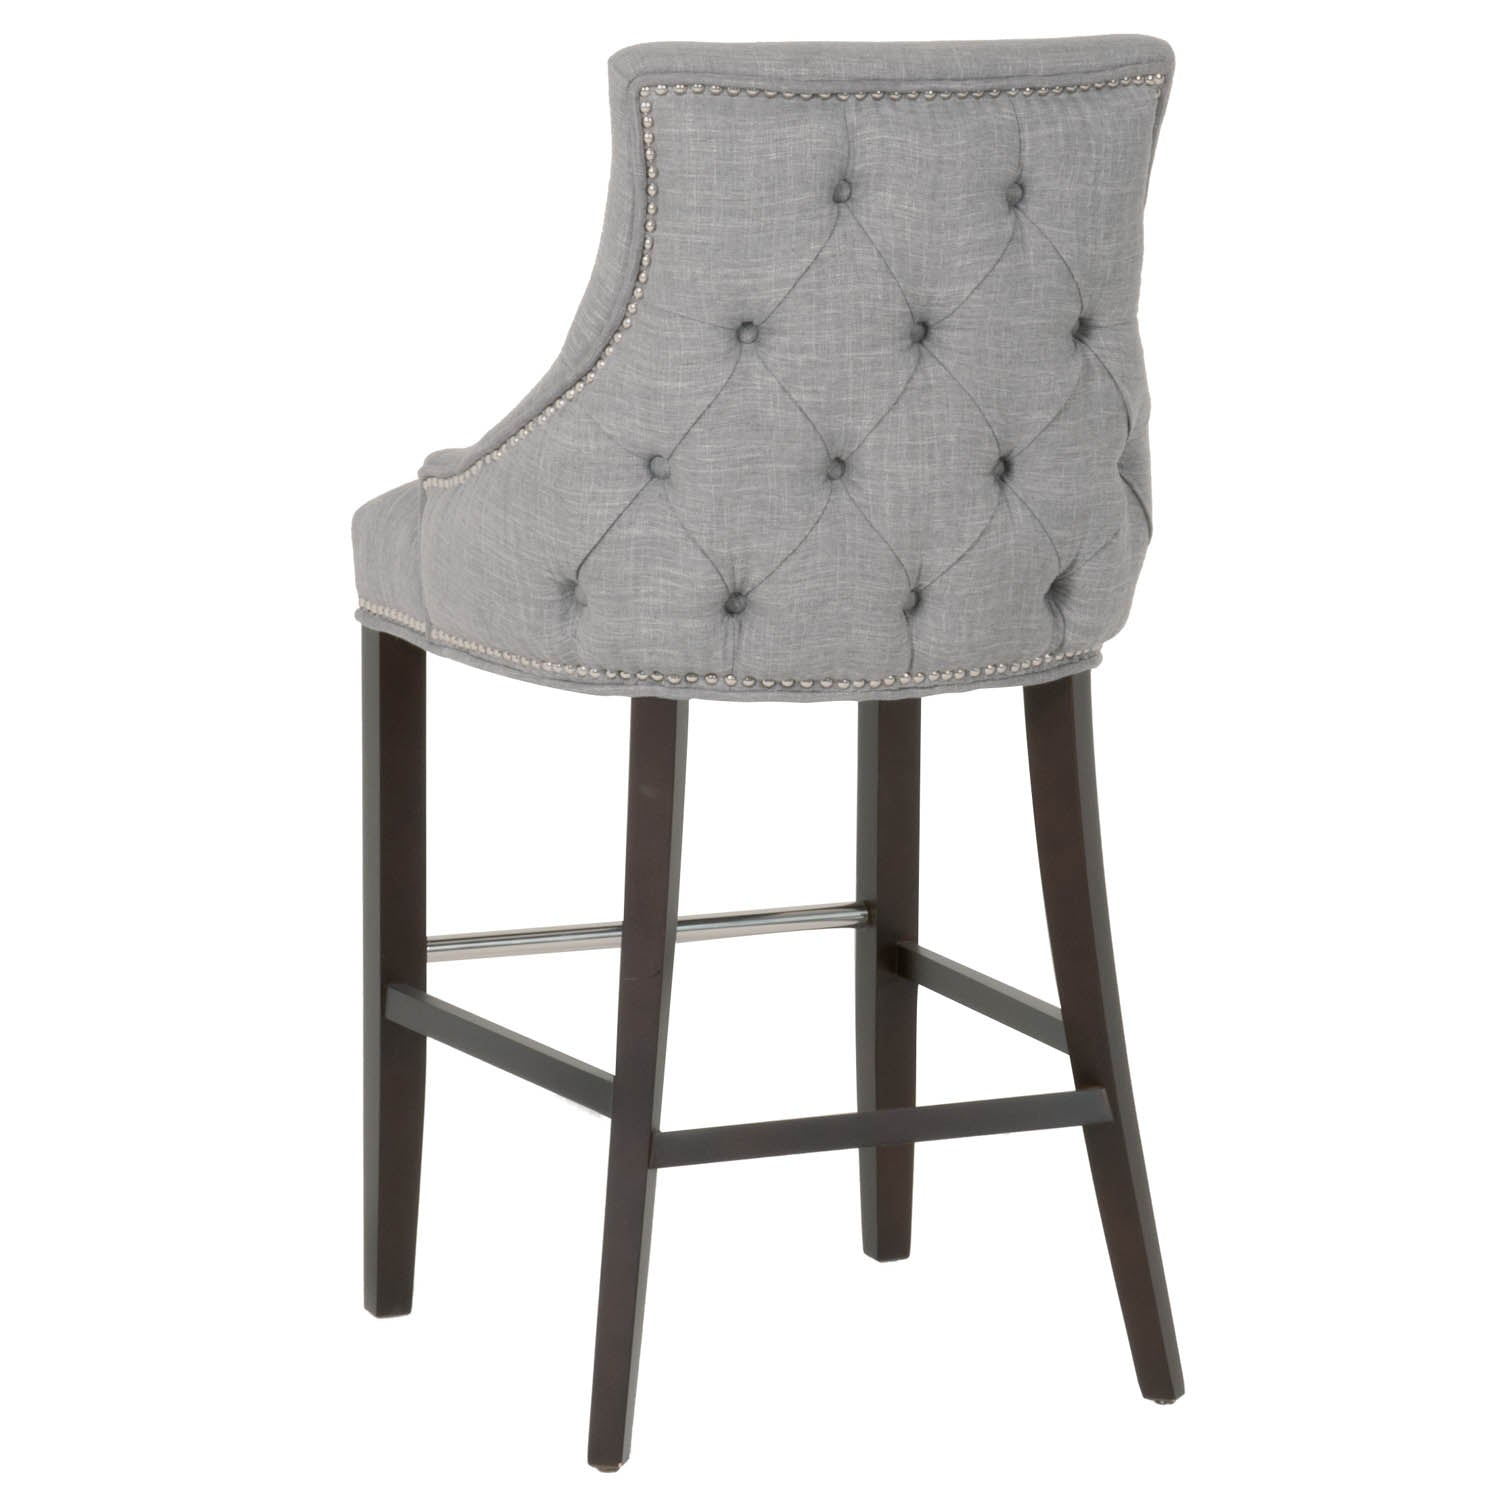 Sepia Bar Stool - CALL FOR SPECIAL PRICING